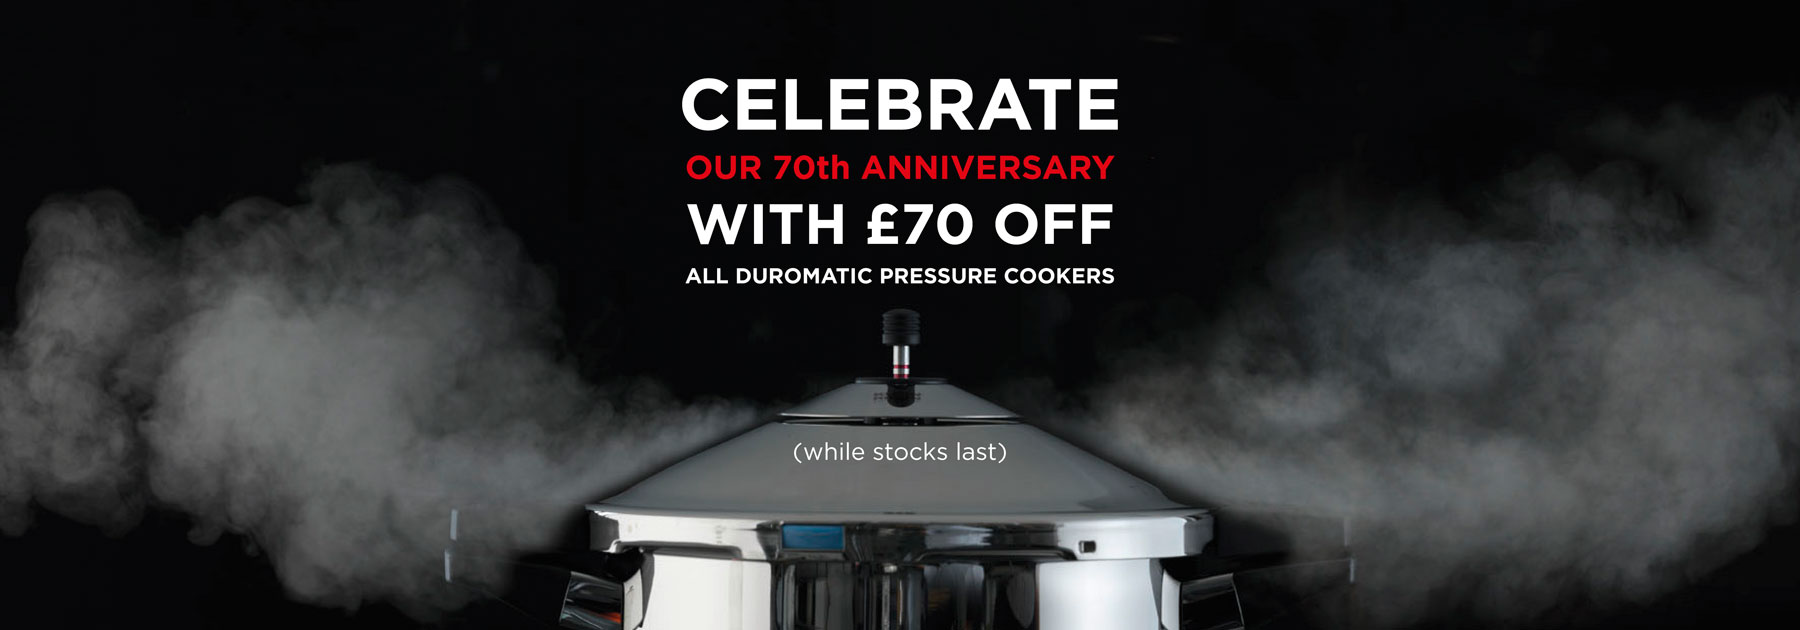 save, discount, pressure, cooker, duromatic, offer